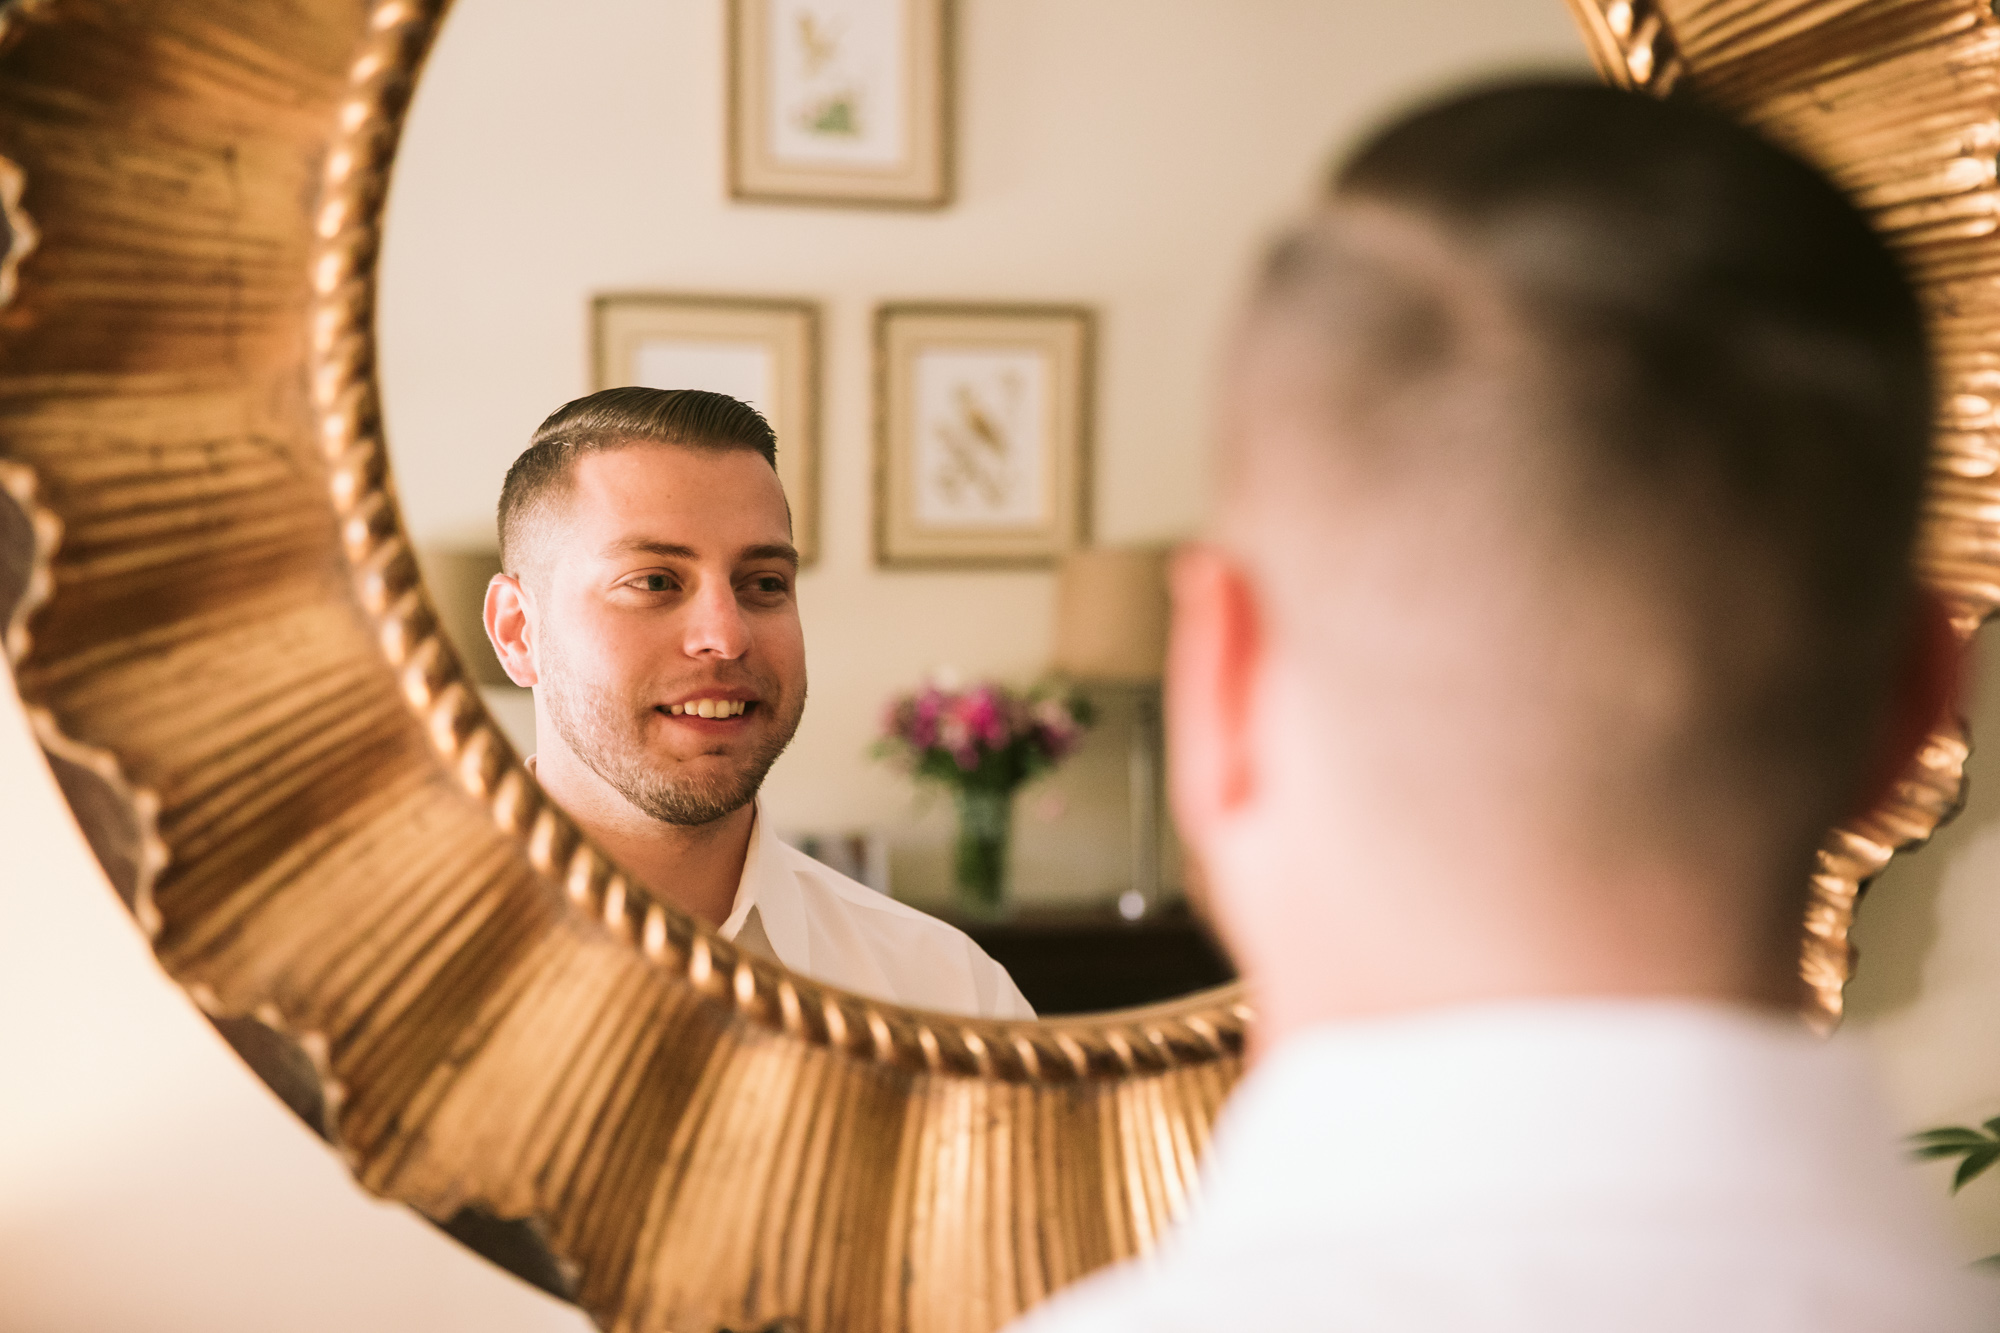 Waynesville NC Wedding Photography | Groom Smiling in the Mirror